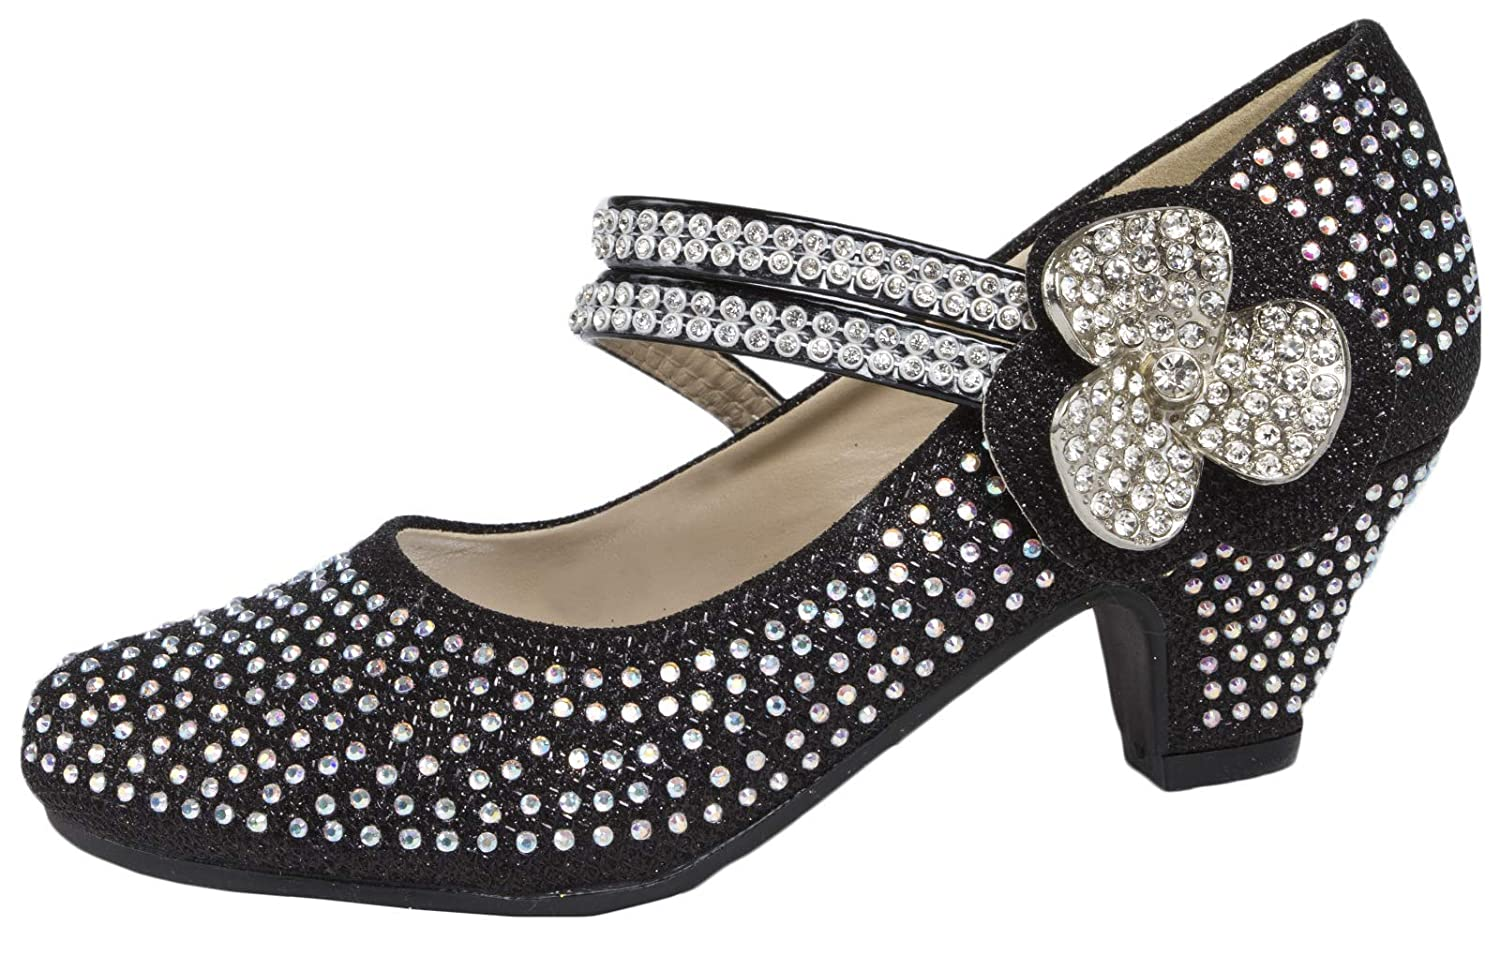 d2a6e94ab5 Lora Dora Girls Mary Jane Low Heel Glitter Party Shoes: Amazon.co.uk: Shoes  & Bags